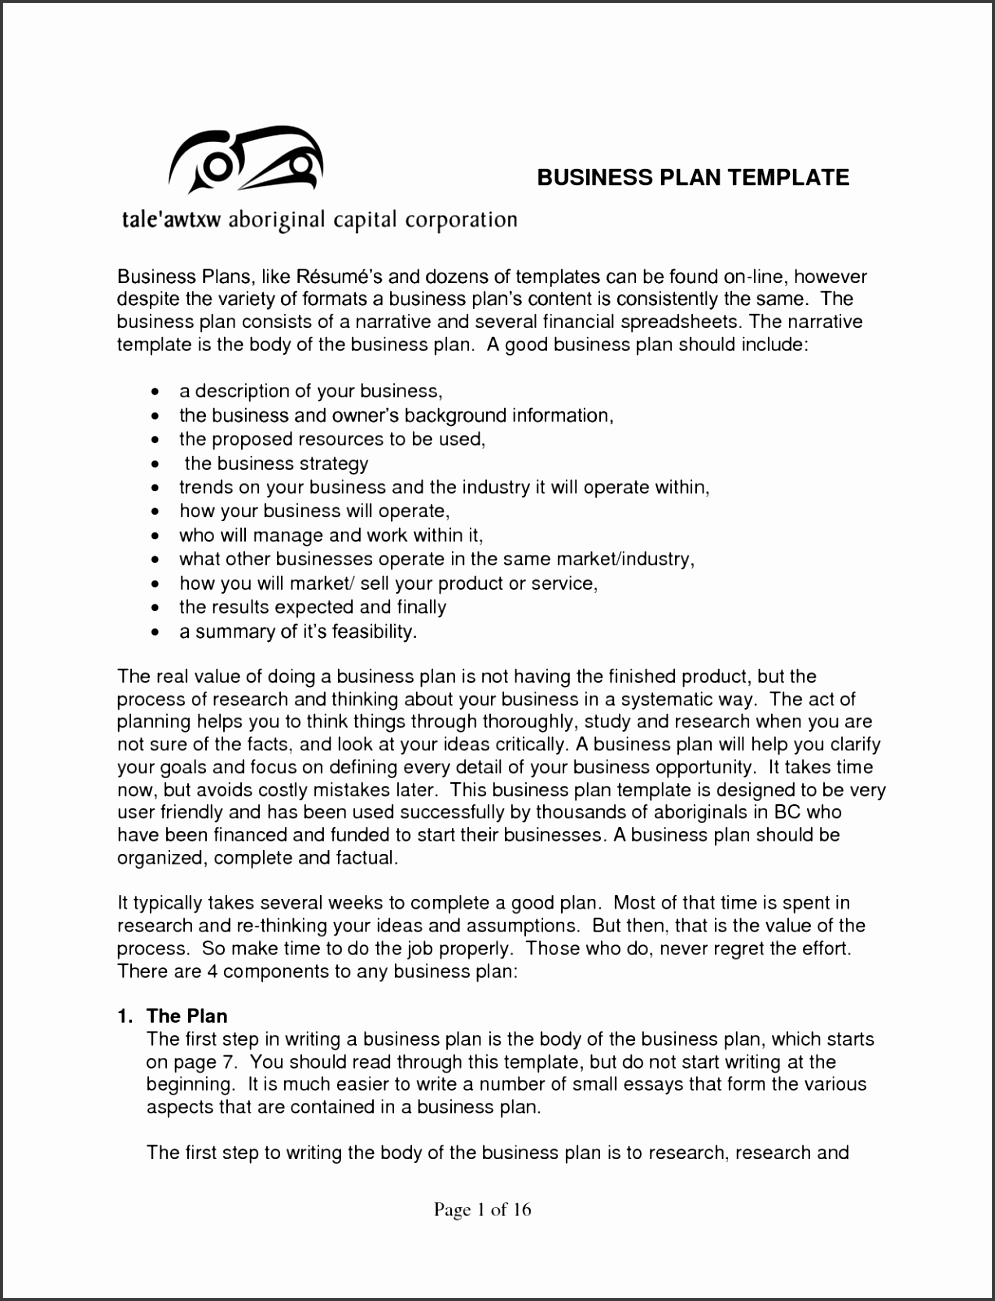 start up business plans planning strategies plan sample format examples and templates Strategic Plan Outline